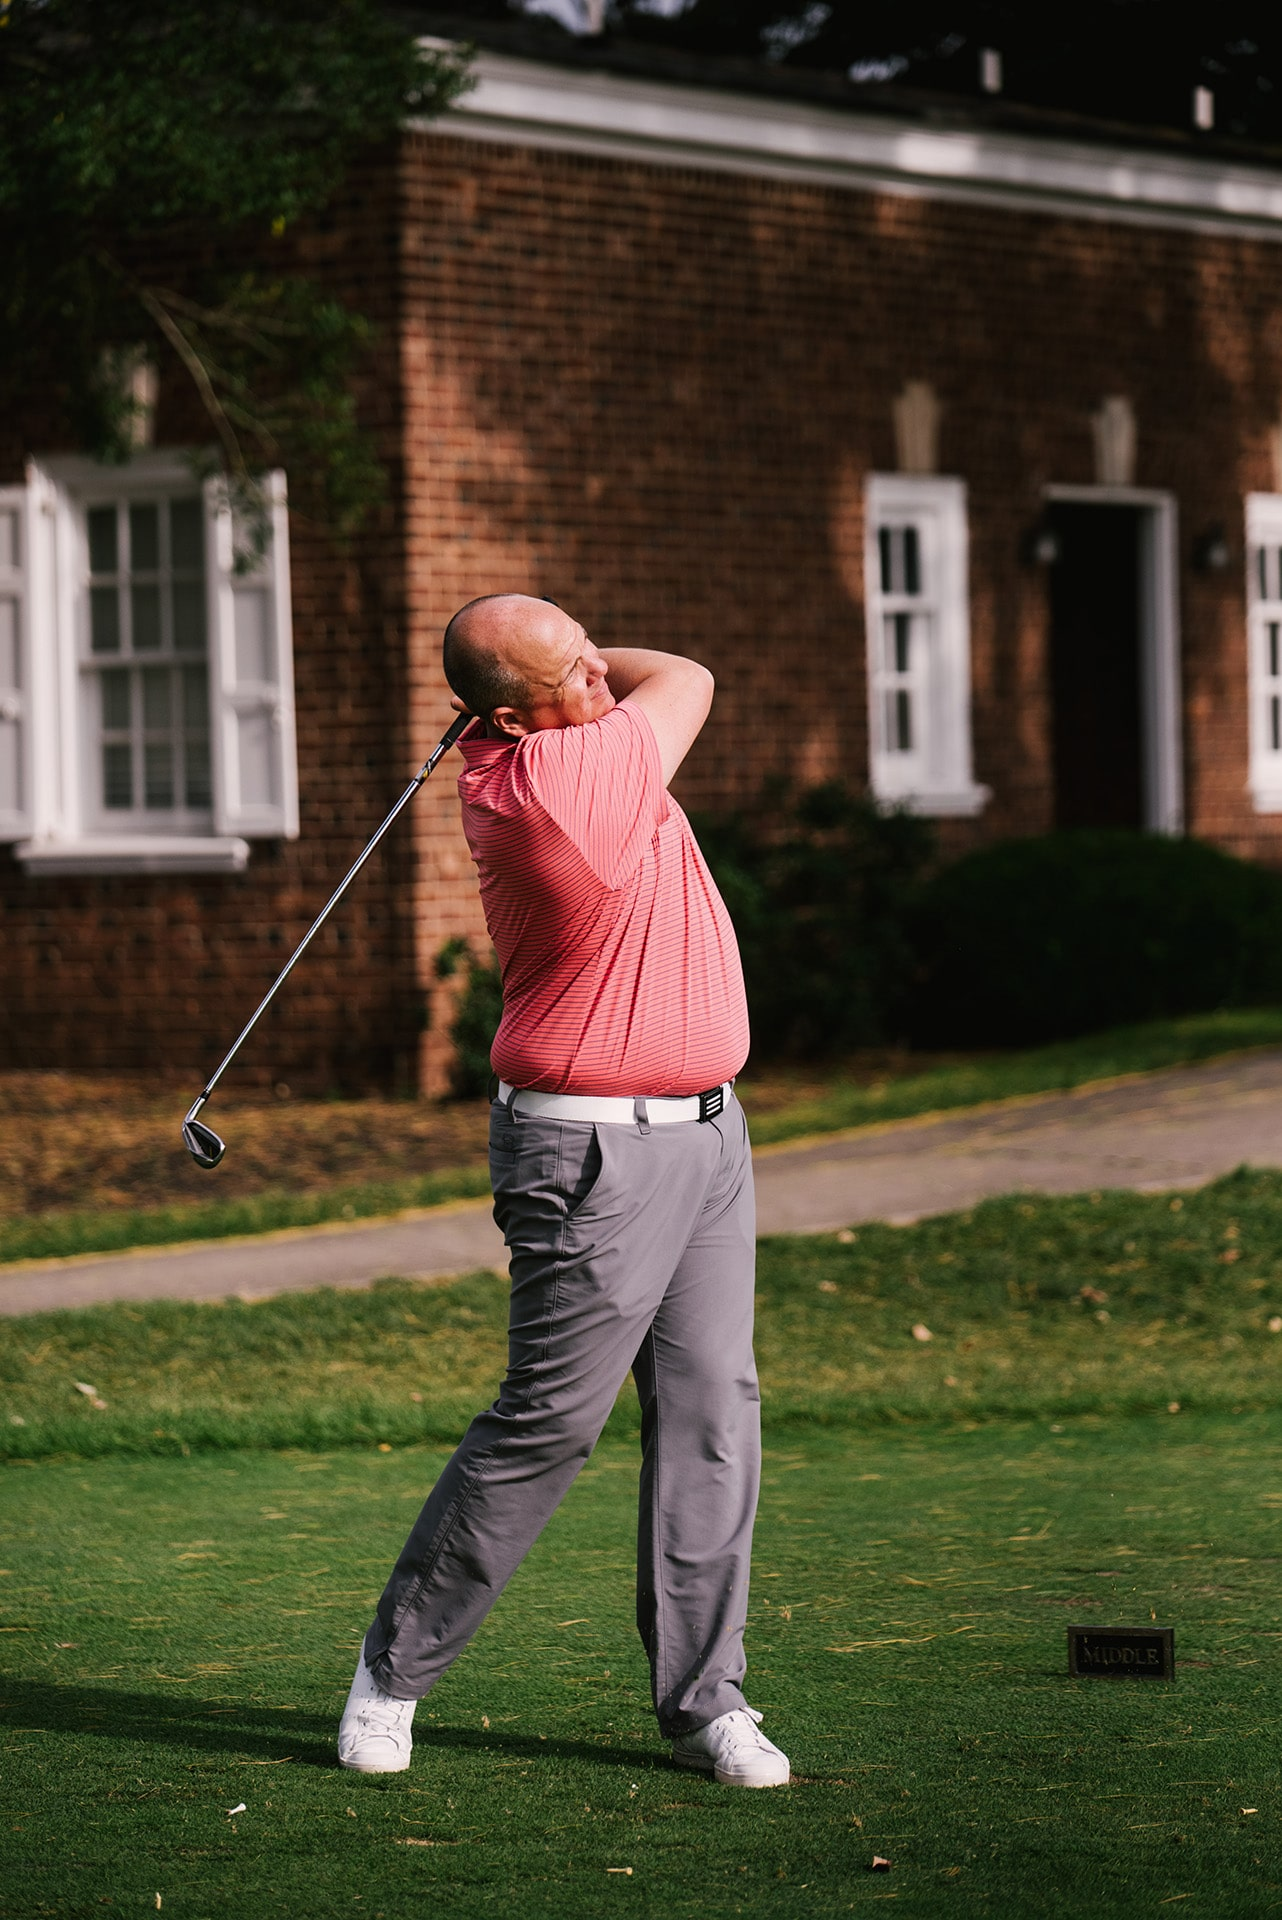 On October 7th, 2019 Community Options, Inc. hosted its golf outing at TPC Jasna Polana in Princeton, New Jersey.